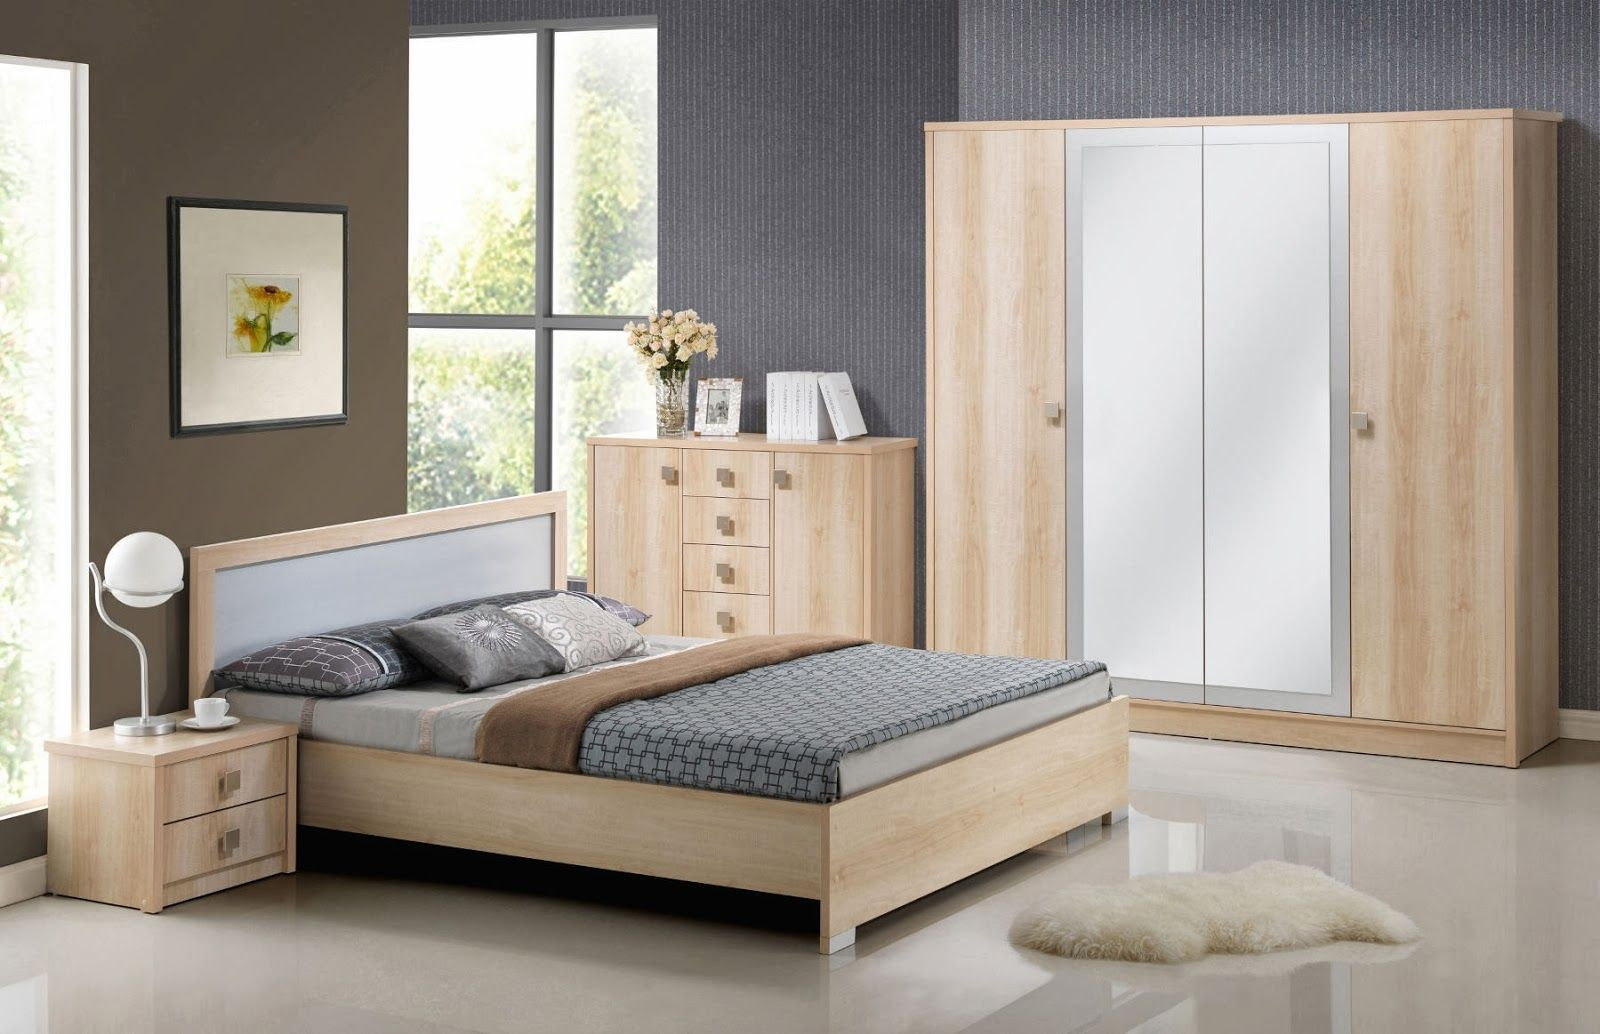 Couples Bedroom Designs Simple Modern Bedroom Ideas For Couples  Design Ideas 20172018 Review